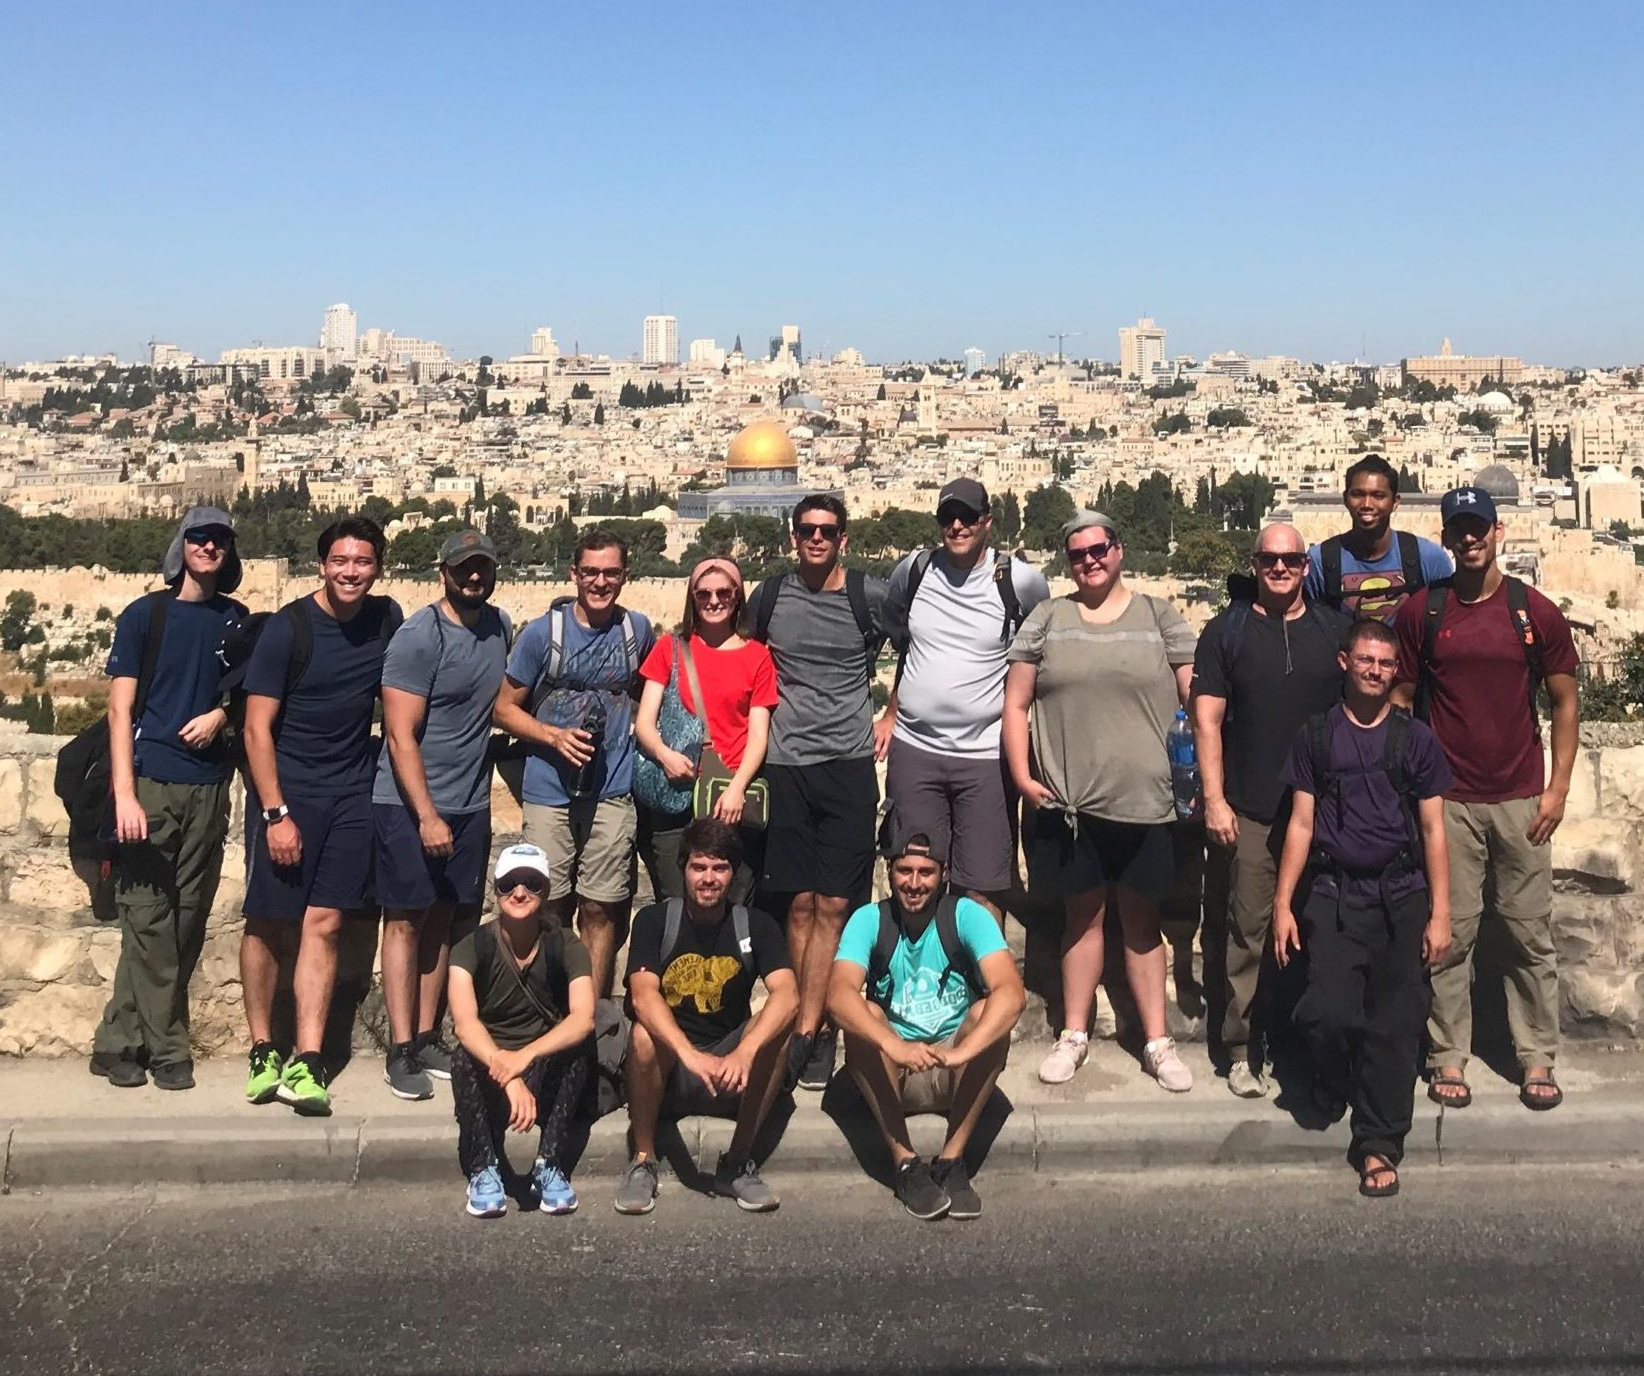 Group photo of a student trip to Israel